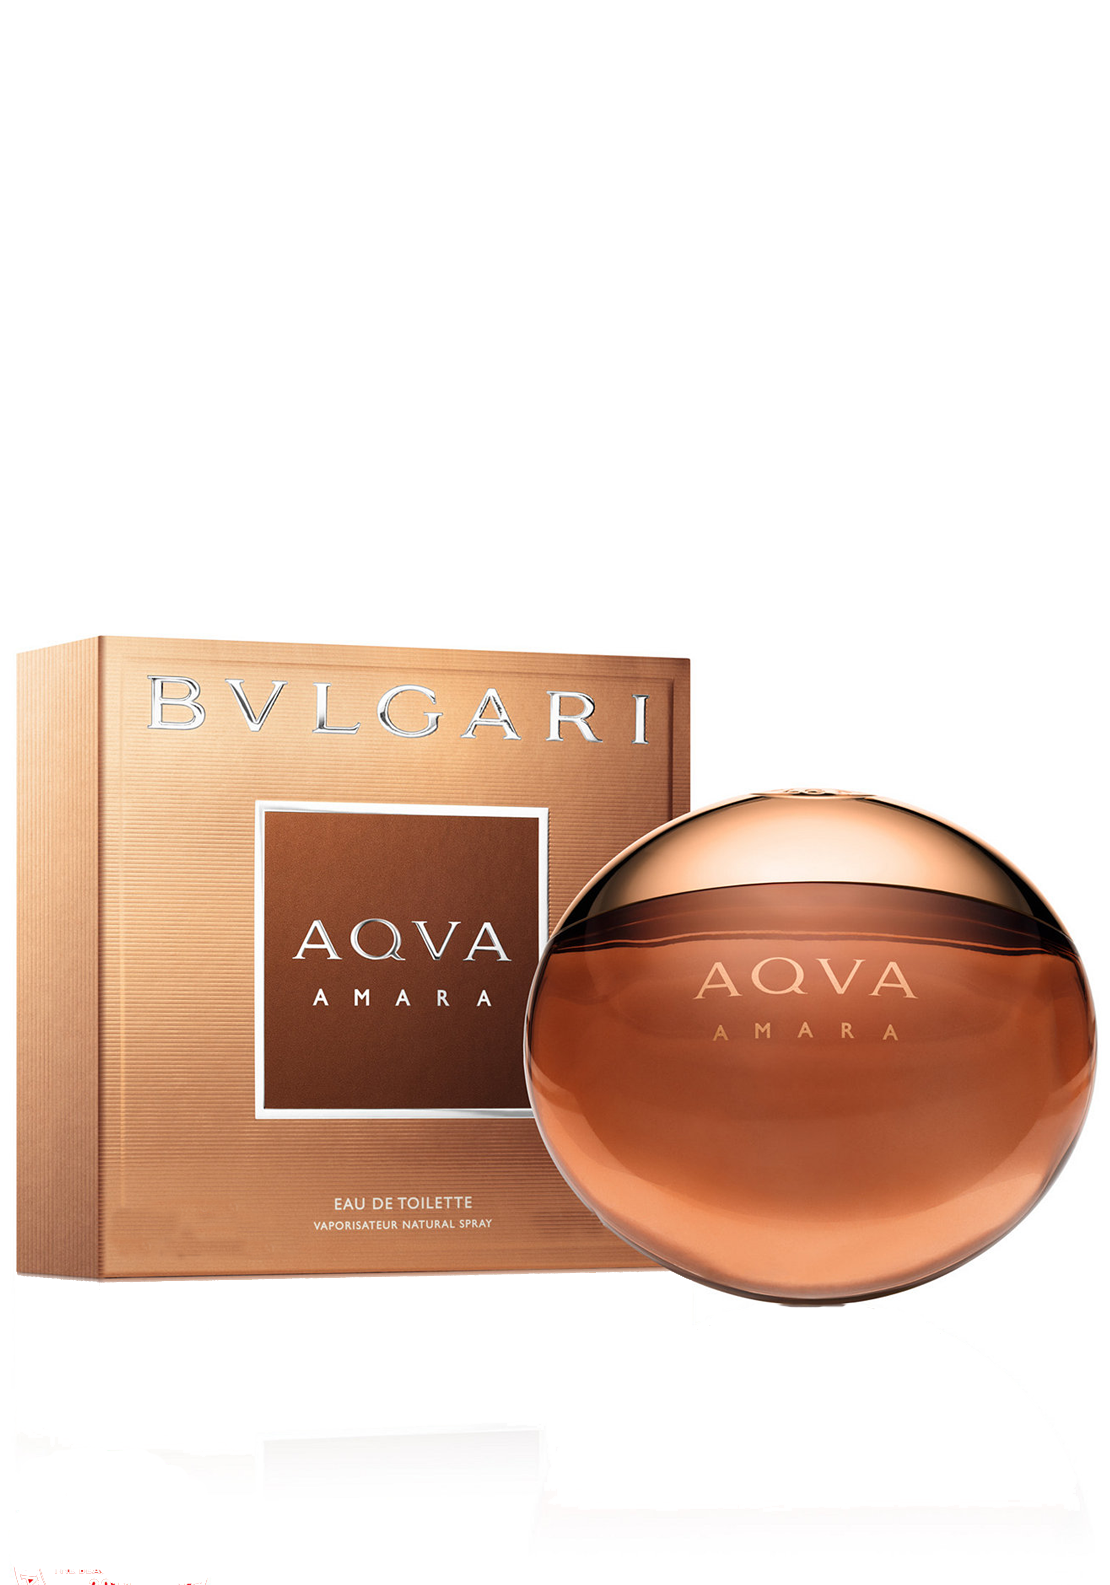 Bvlgari Aqva Amara for him, 50ml